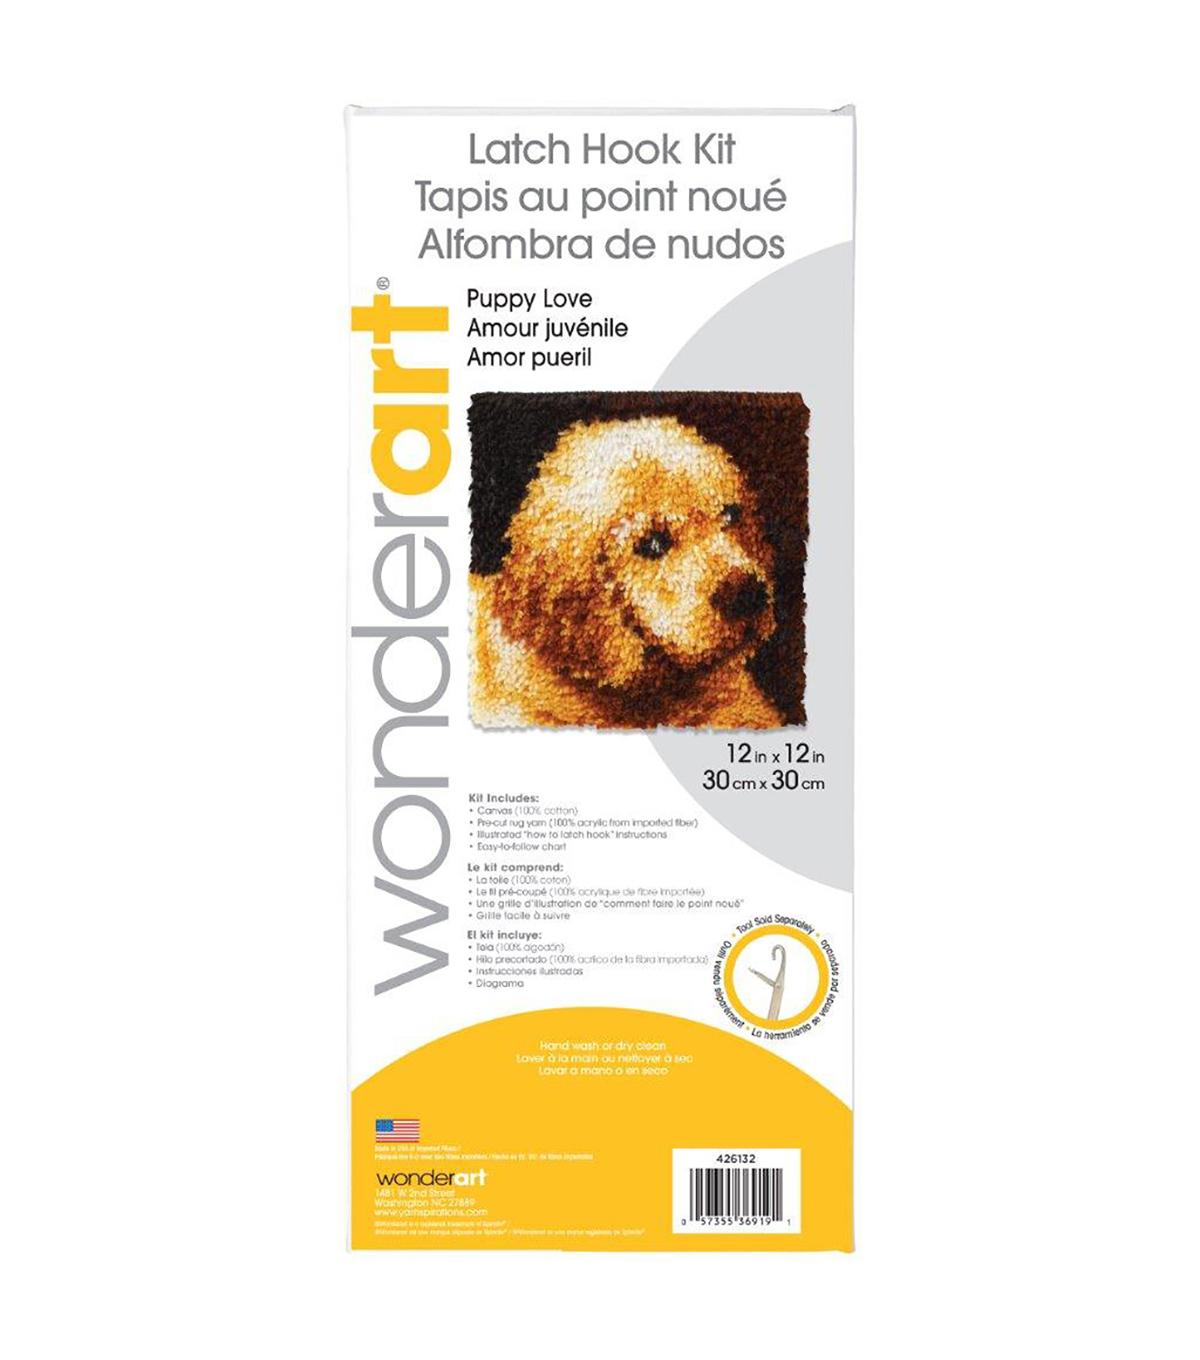 Two Dogs Latch Hook Rug Making Kits for Children with Wooden Crochet Hook